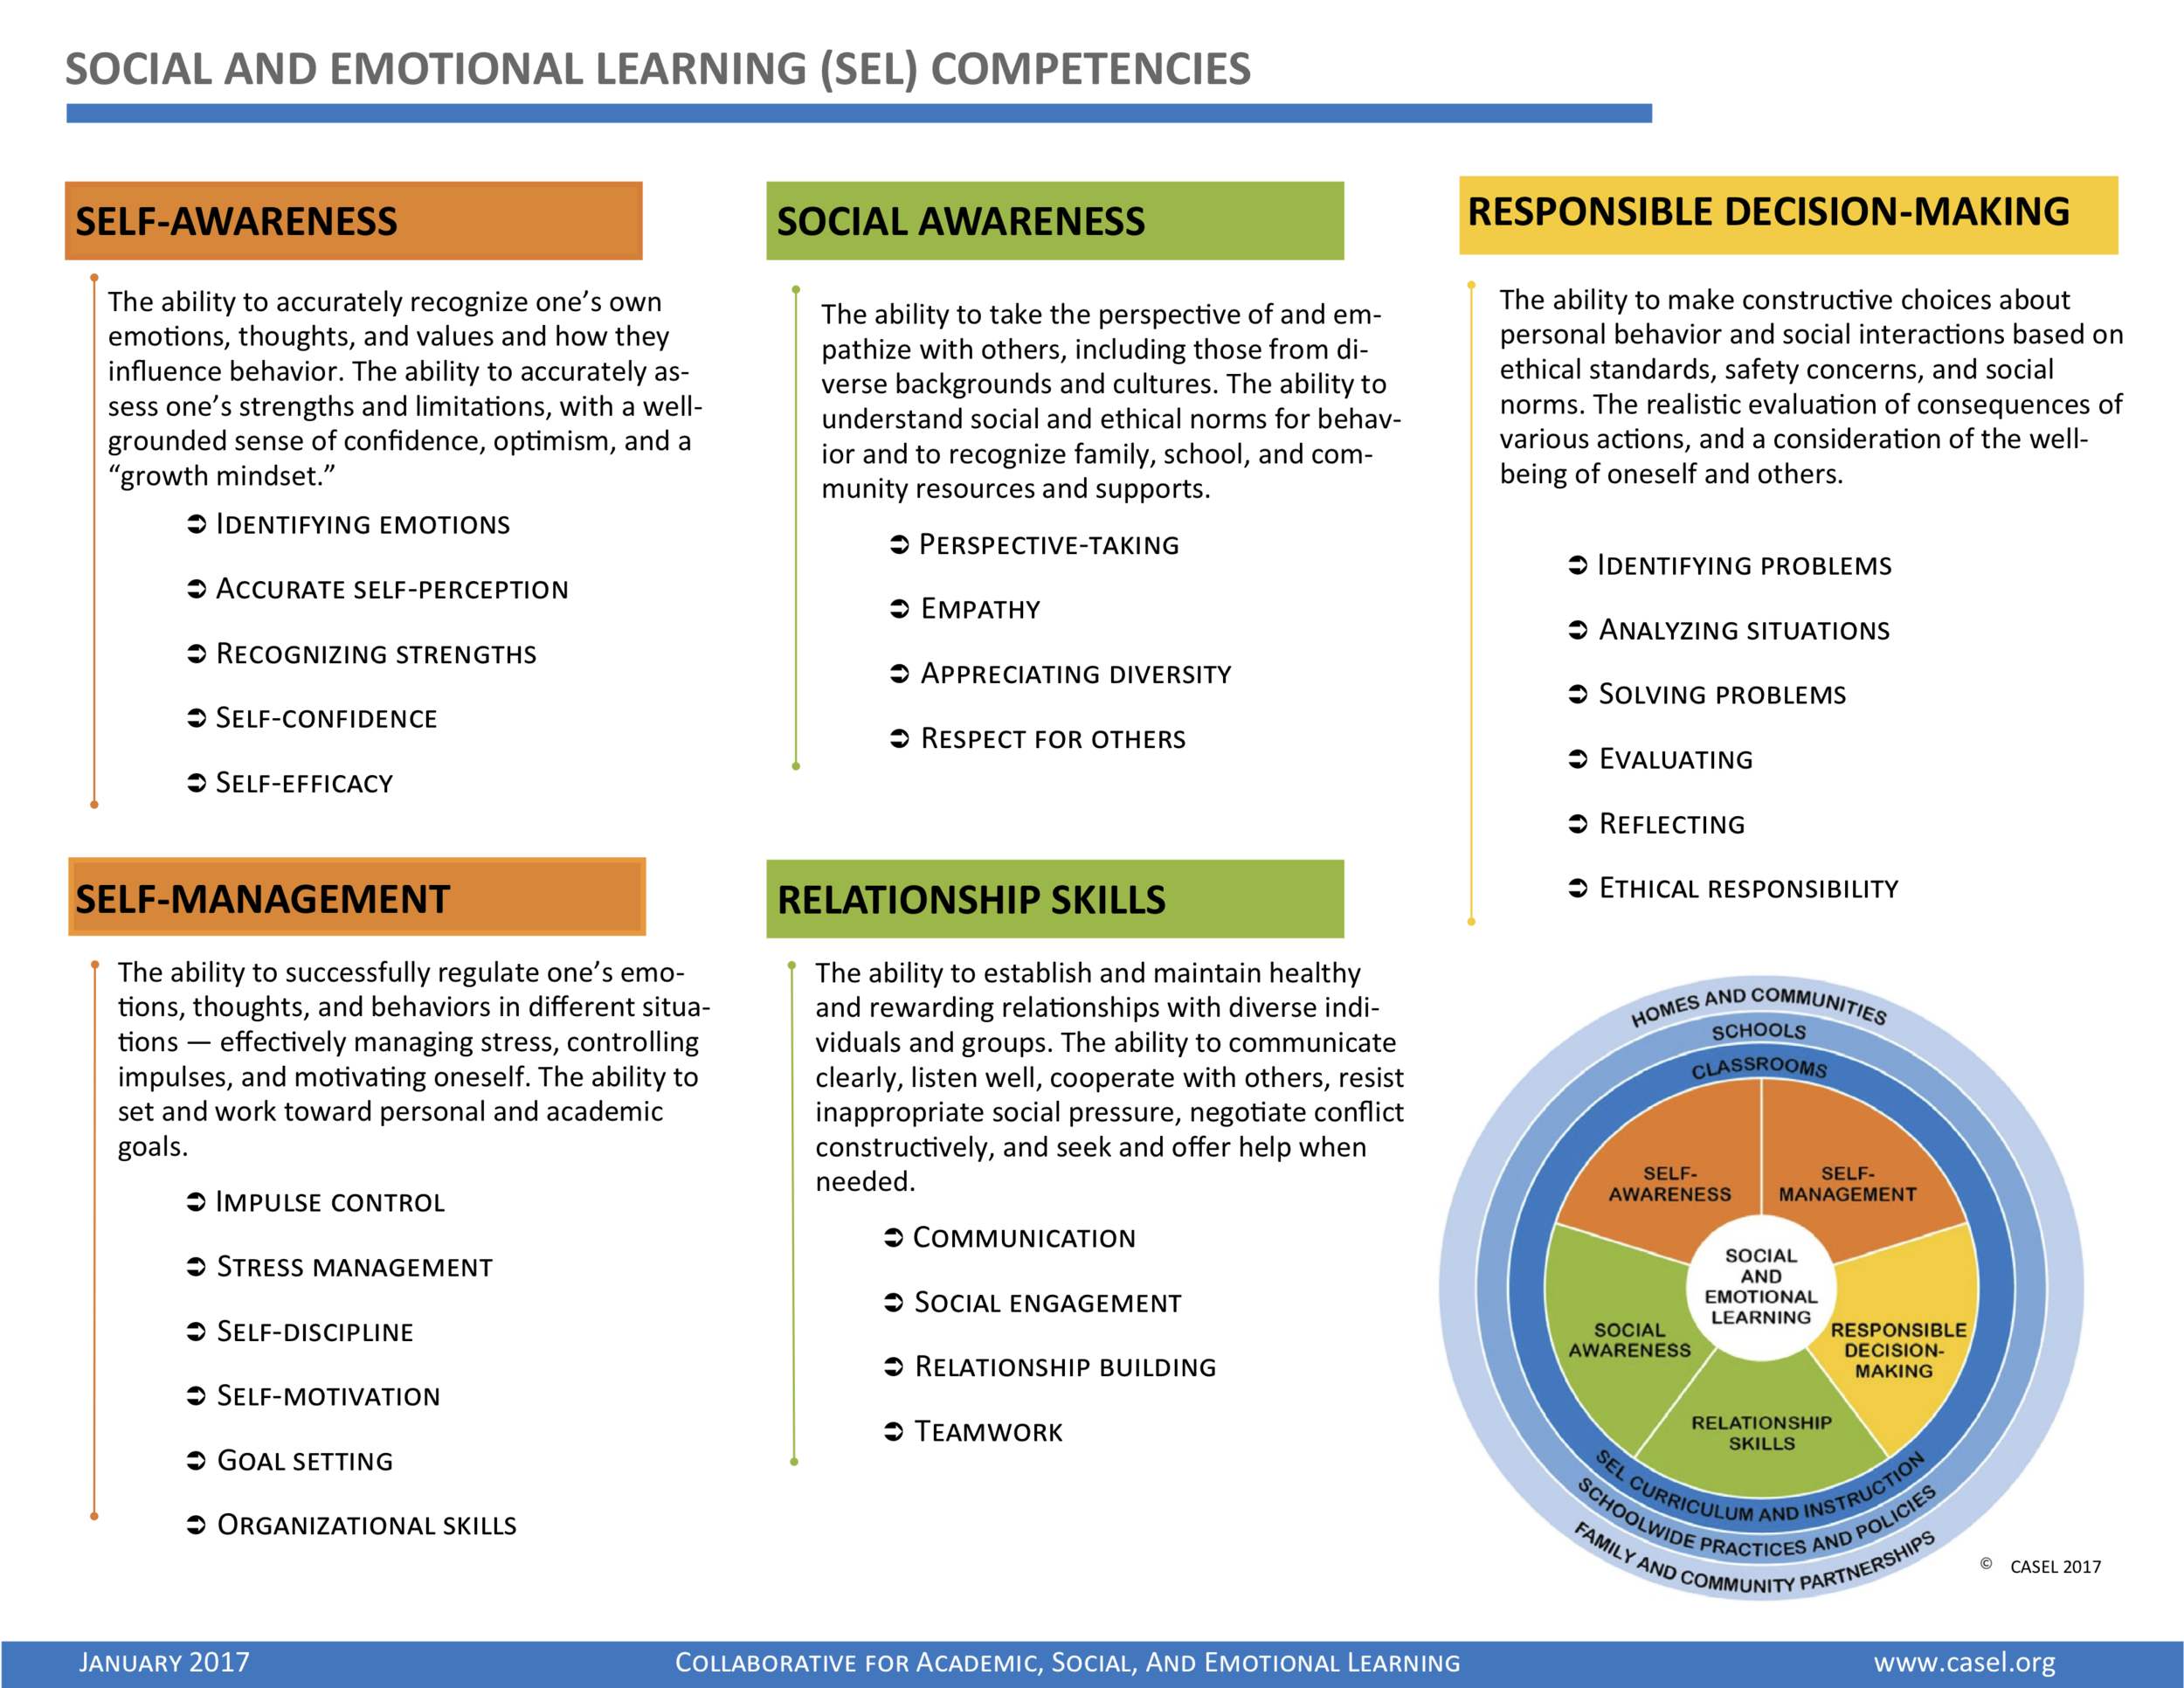 Social and Emotional (SEL) Competencies and Skills 2.png